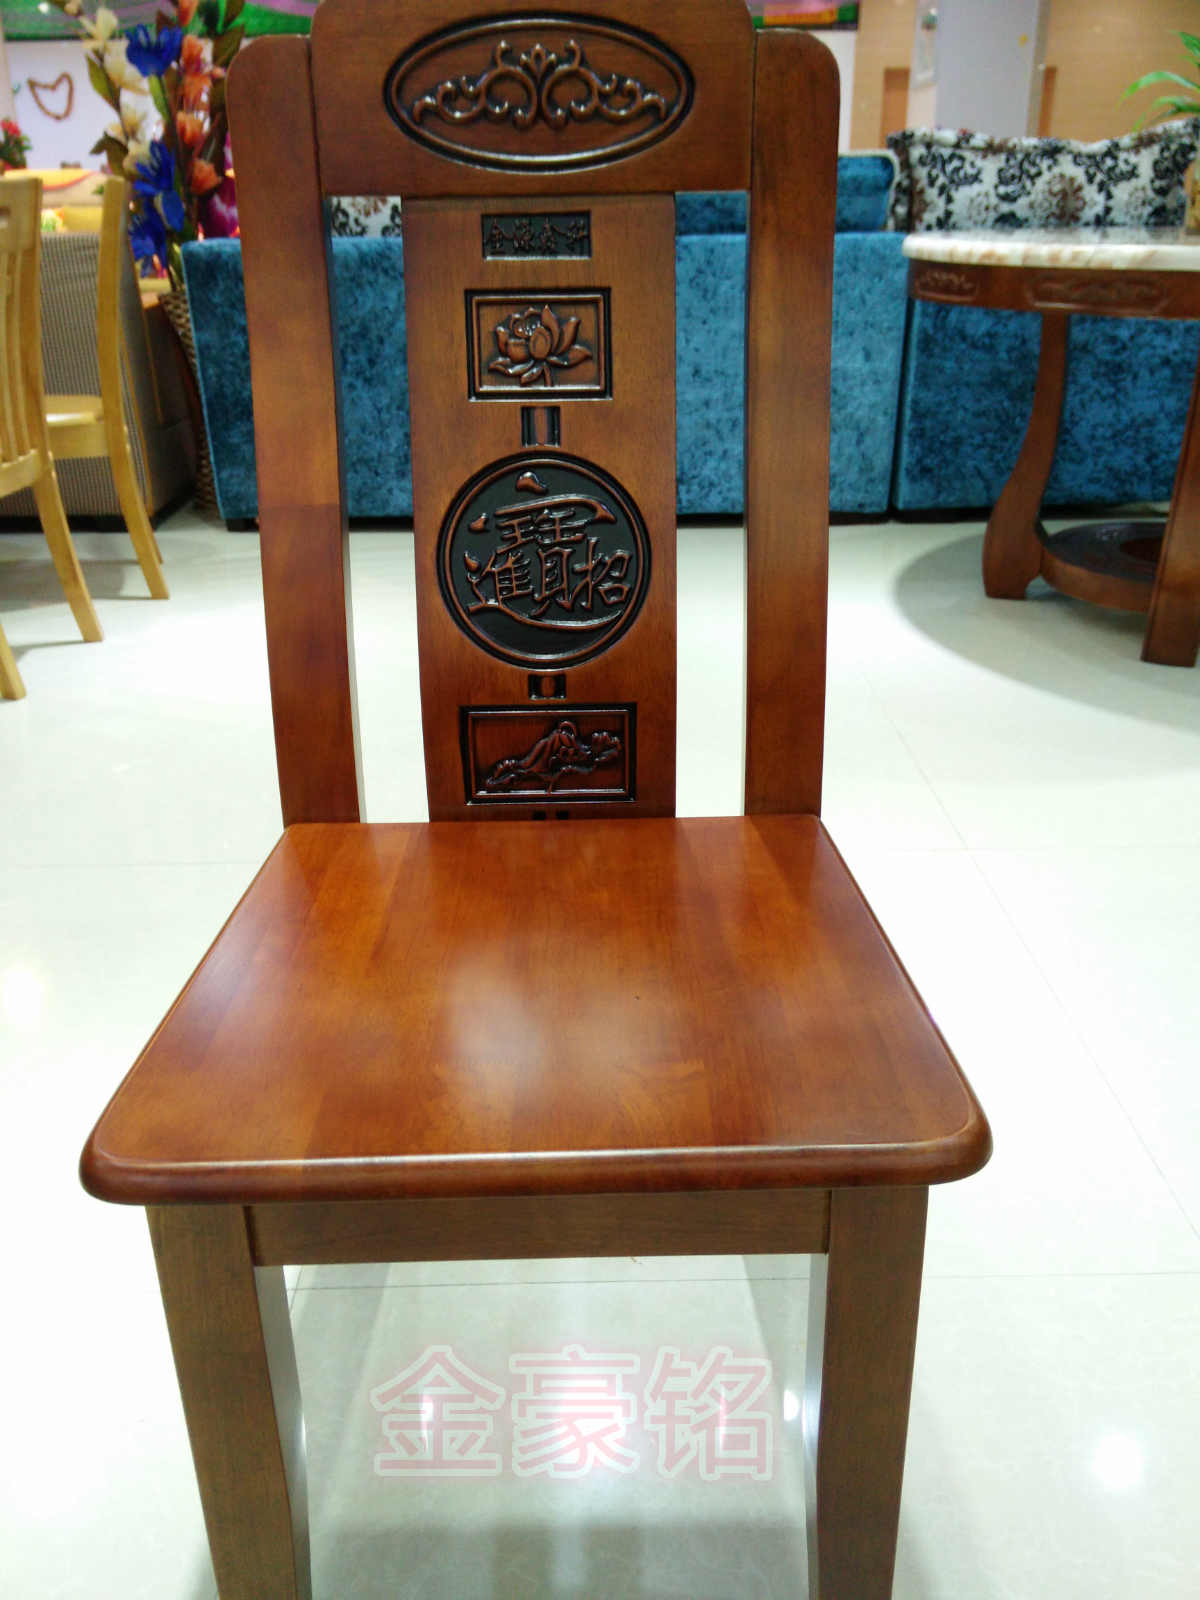 Exciting Hotel Furniture Factory Direct Hotel Restaurant Chairs Wood Hotel Chairs From Furniture On Alibaba Group Hotel Furniture Factory Direct Hotel Restaurant Chairs Wood Banquet houzz-03 Furniture Factory Direct